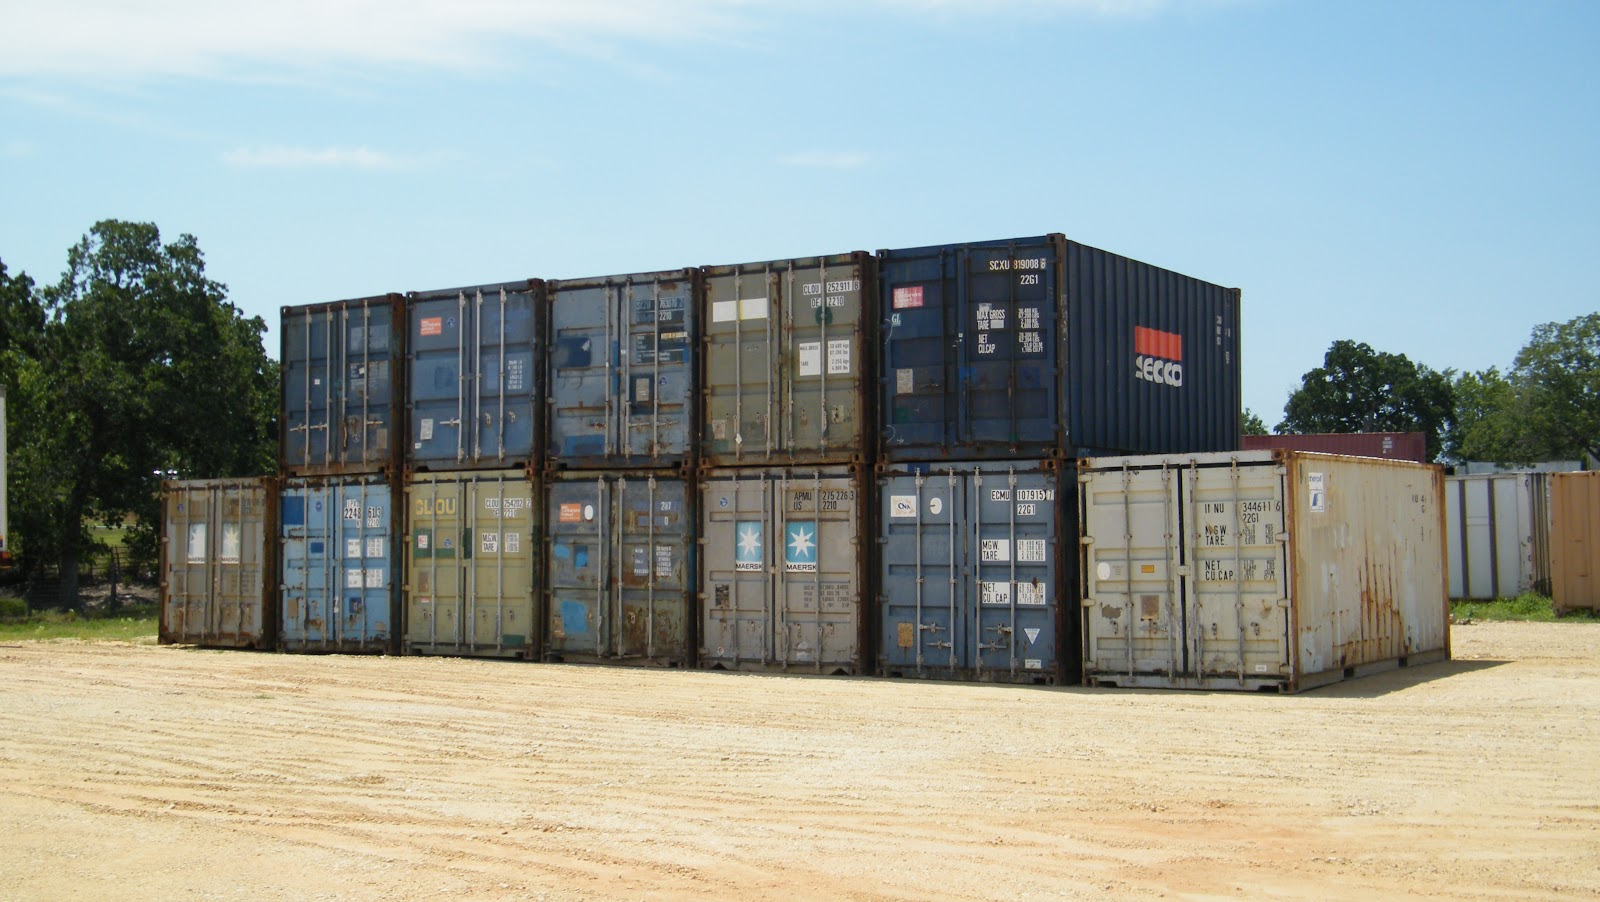 Texas container homes jesse c smith jr consultant august 2011 - Container homes texas ...